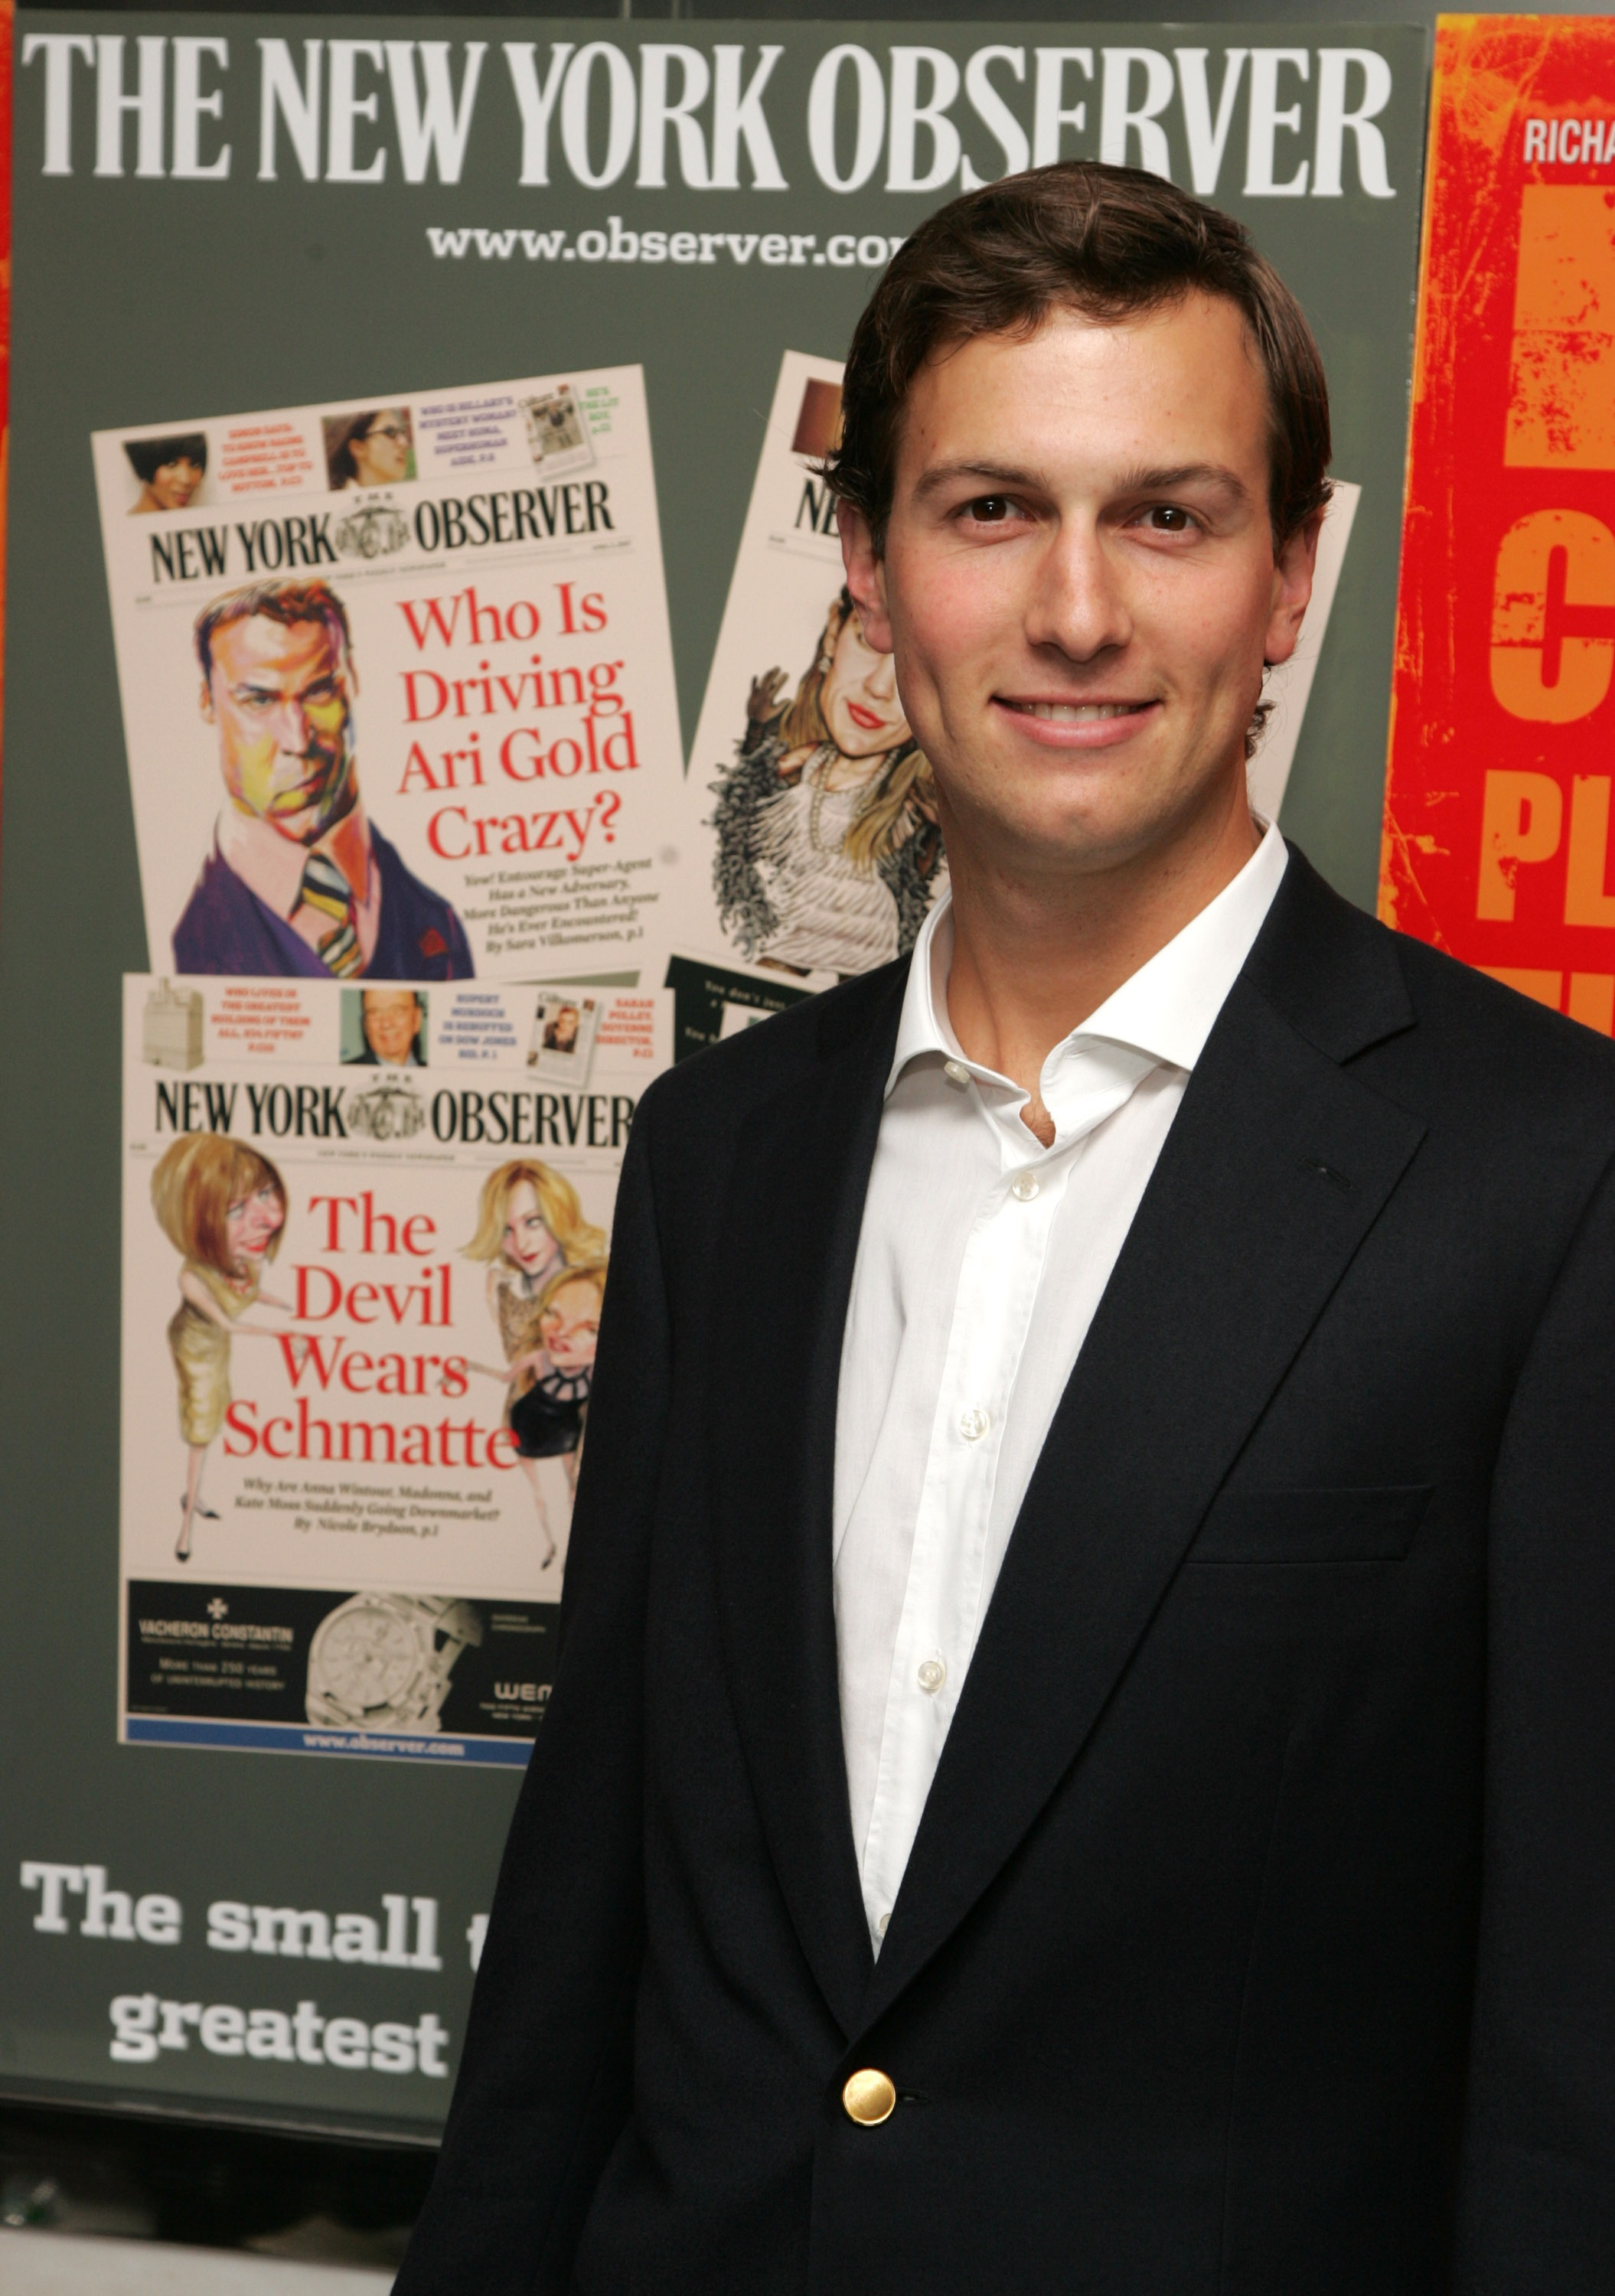 jared kushner, ivanka trump husband jared kushner, donald trump jared kushner